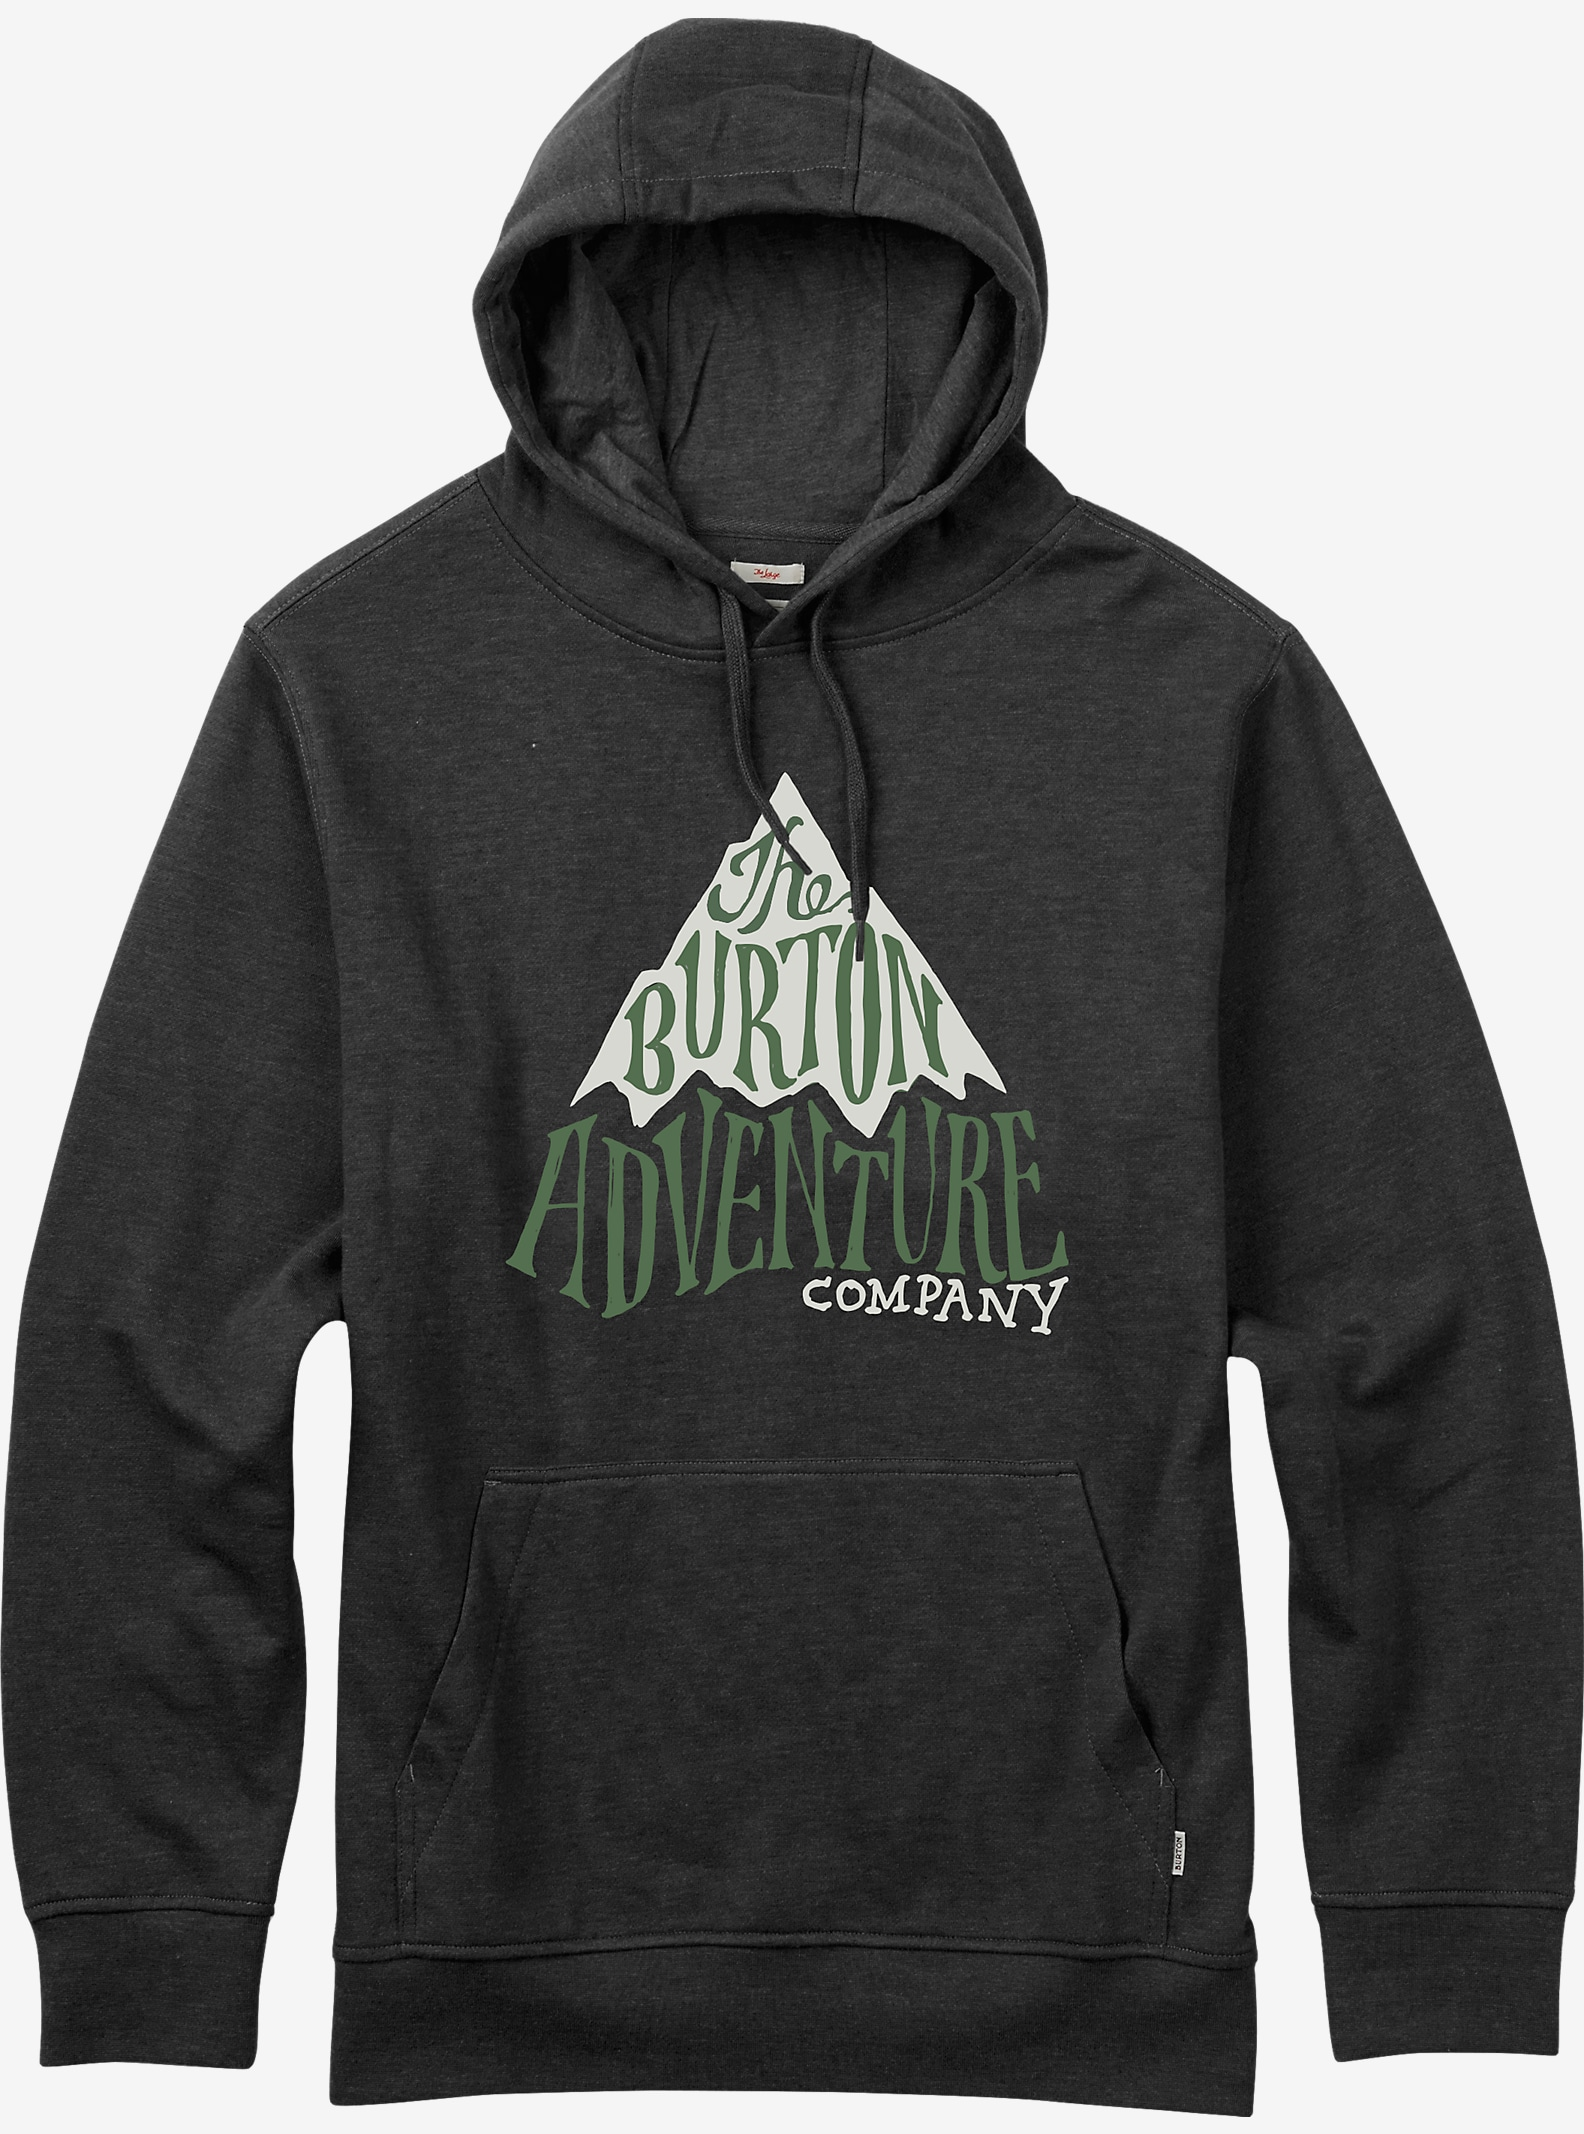 Burton Adventure Co Recycled Pullover Hoodie shown in True Black Heather